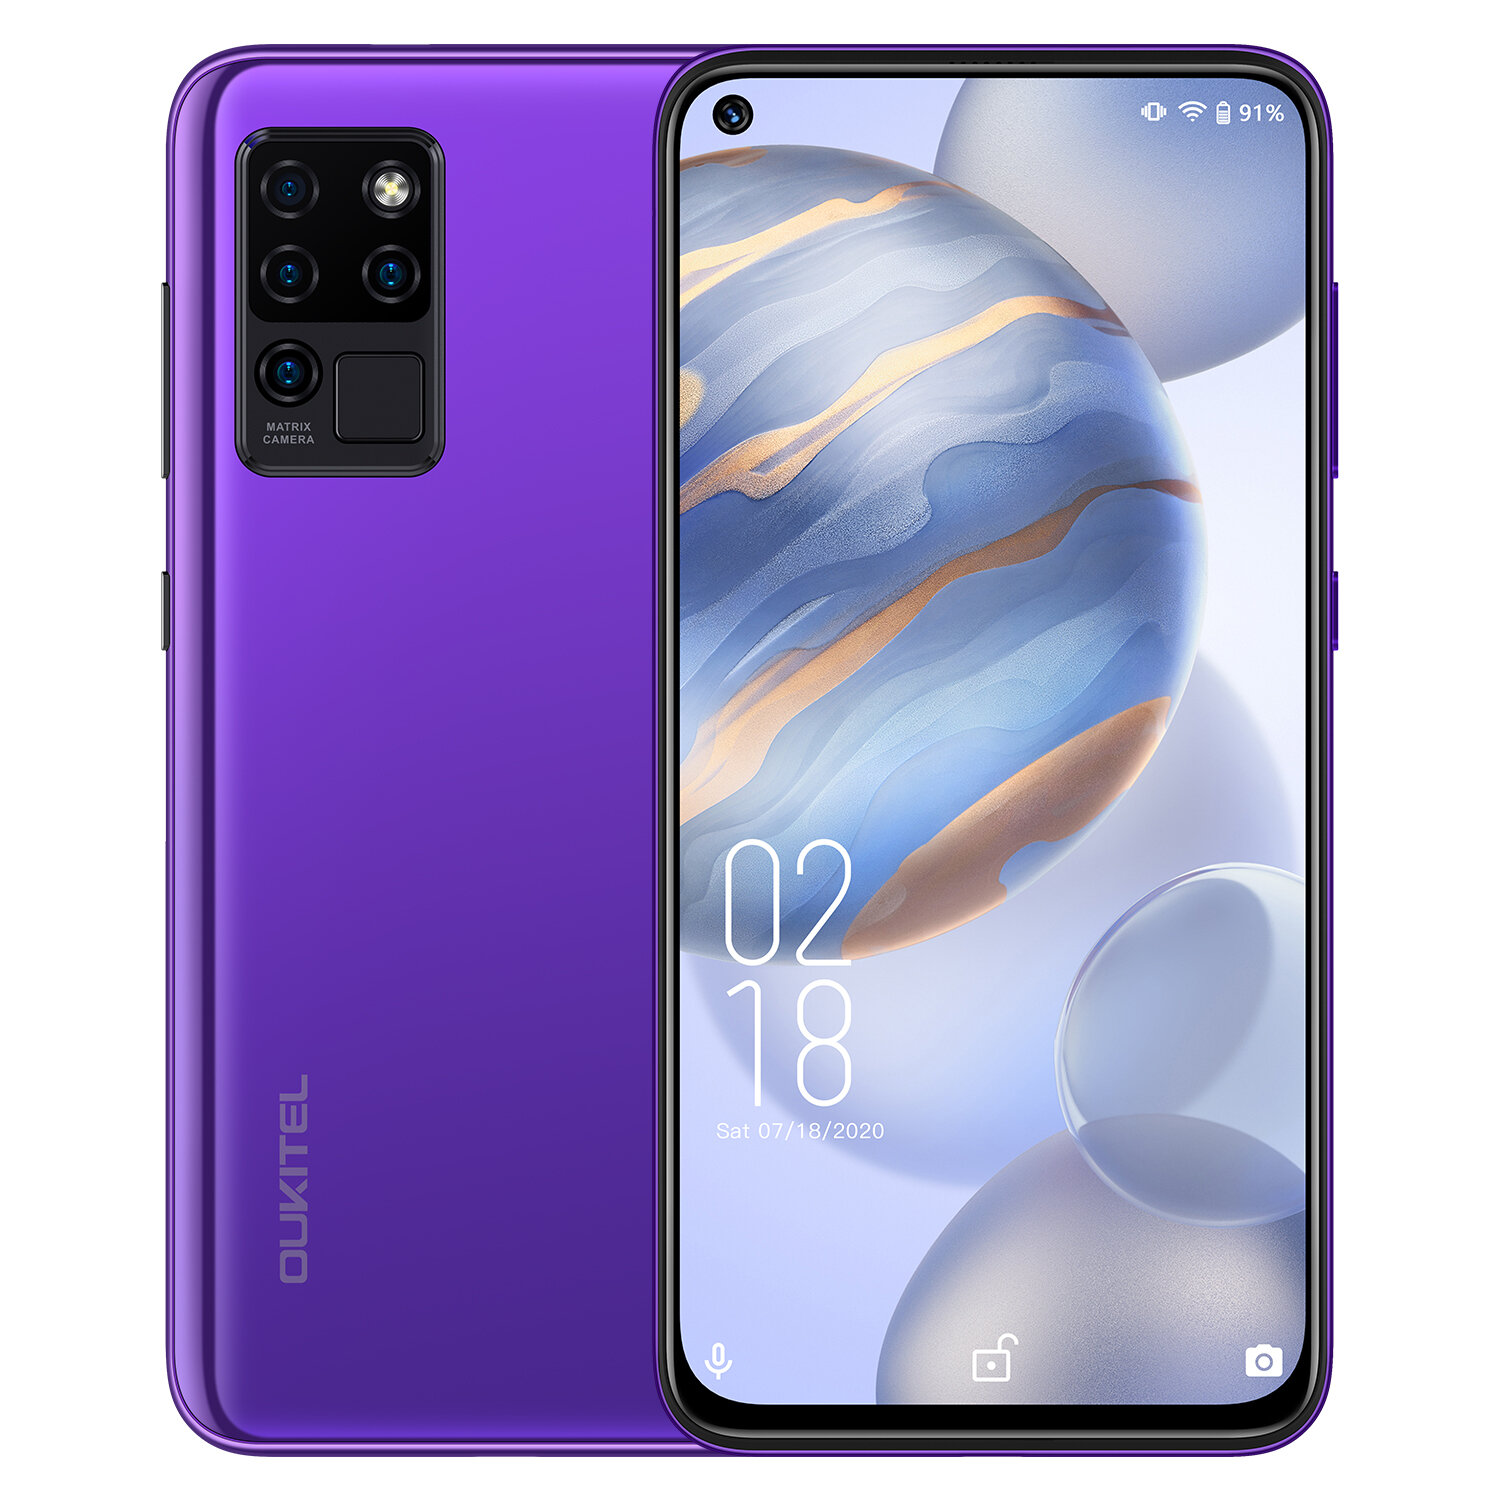 OUKITEL C21 6.4 inch FHD+ Hole Punch Display 4000mAh Android 10 20MP Front Camera 4GB 64GB Helio P60 4G Smartphone - Purple